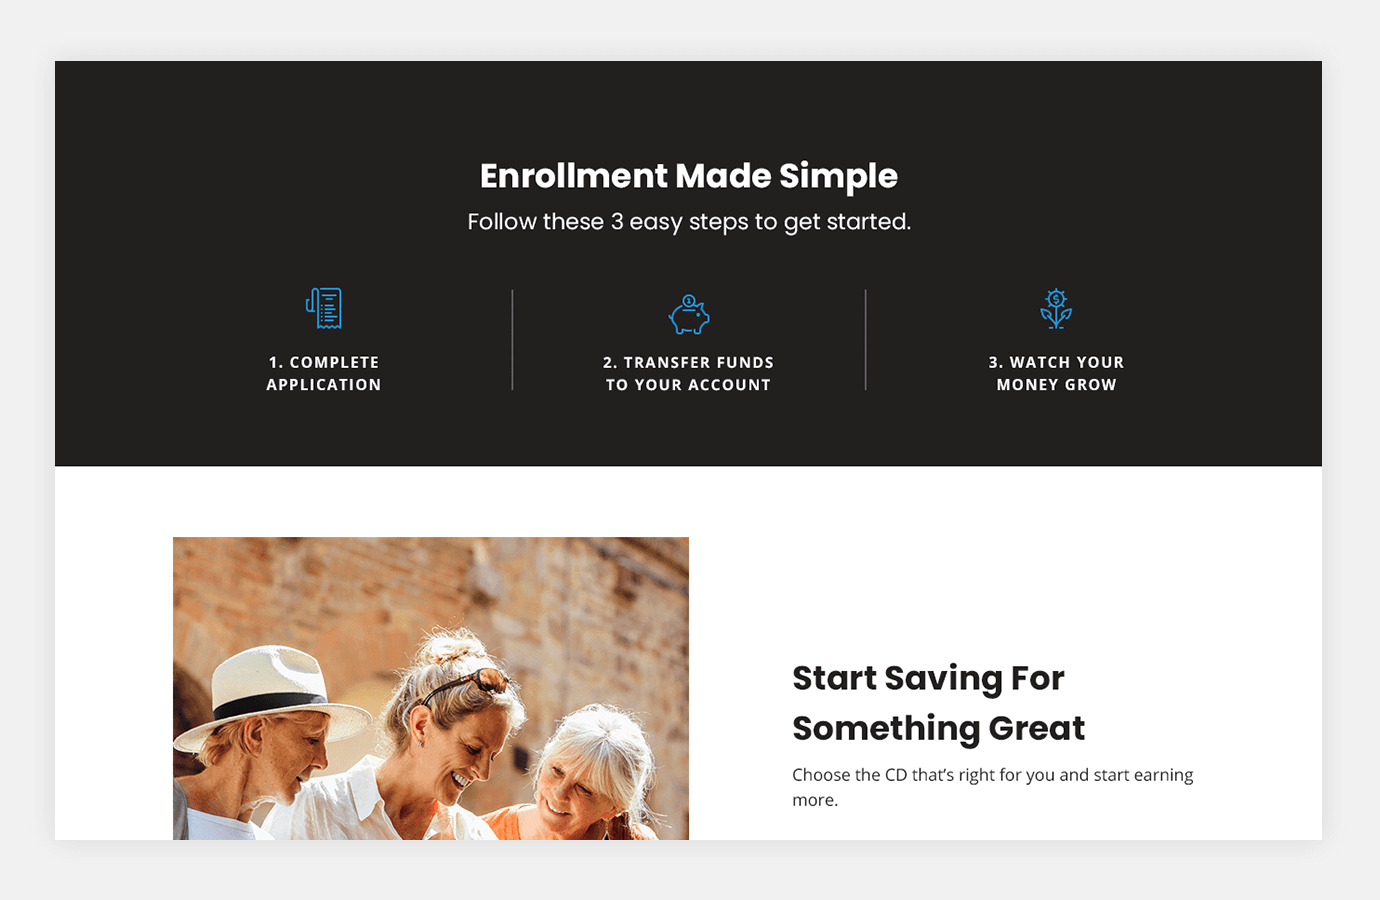 Screenshot of BankUnited Direct website showing three easy steps to enroll